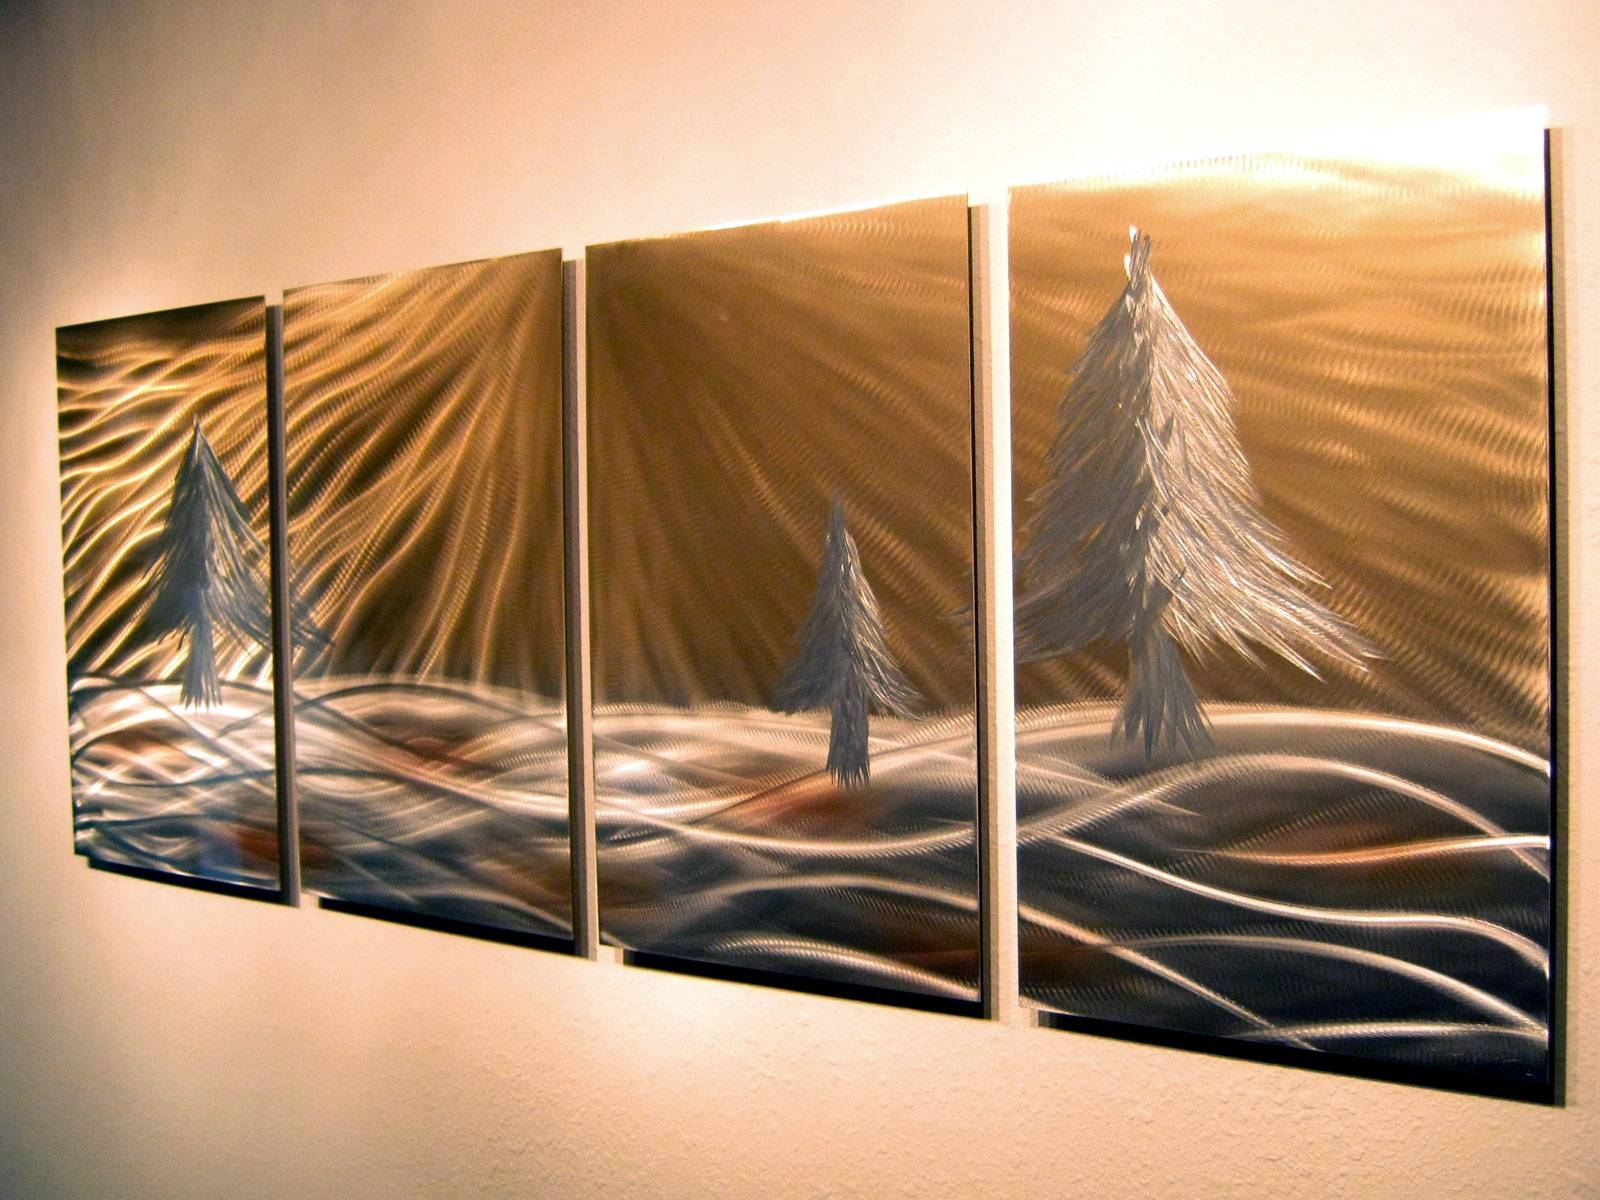 3 Pine Trees – Abstract Metal Wall Art Contemporary Modern Decor Pertaining To Recent Pine Tree Metal Wall Art (View 14 of 25)